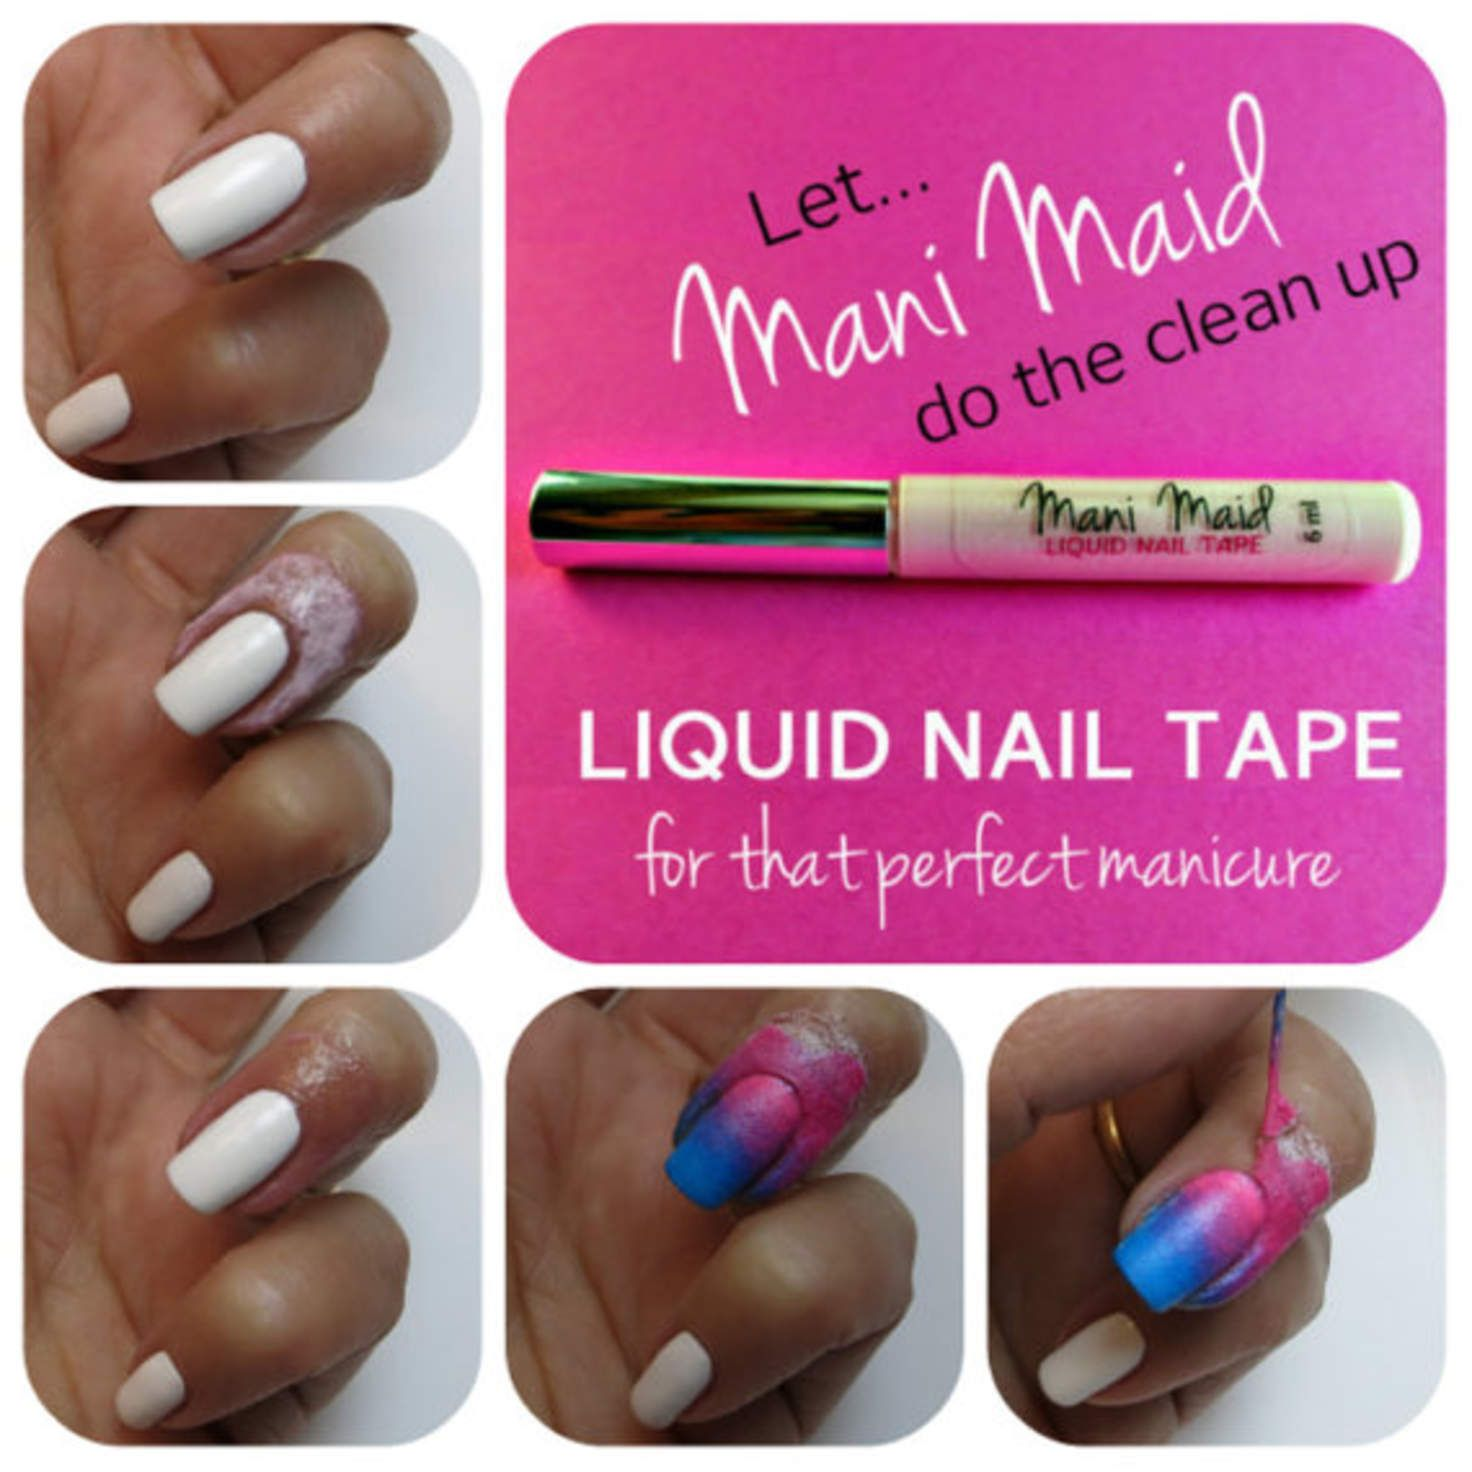 Liquid Nail Tape Latex L Off Mani Maid